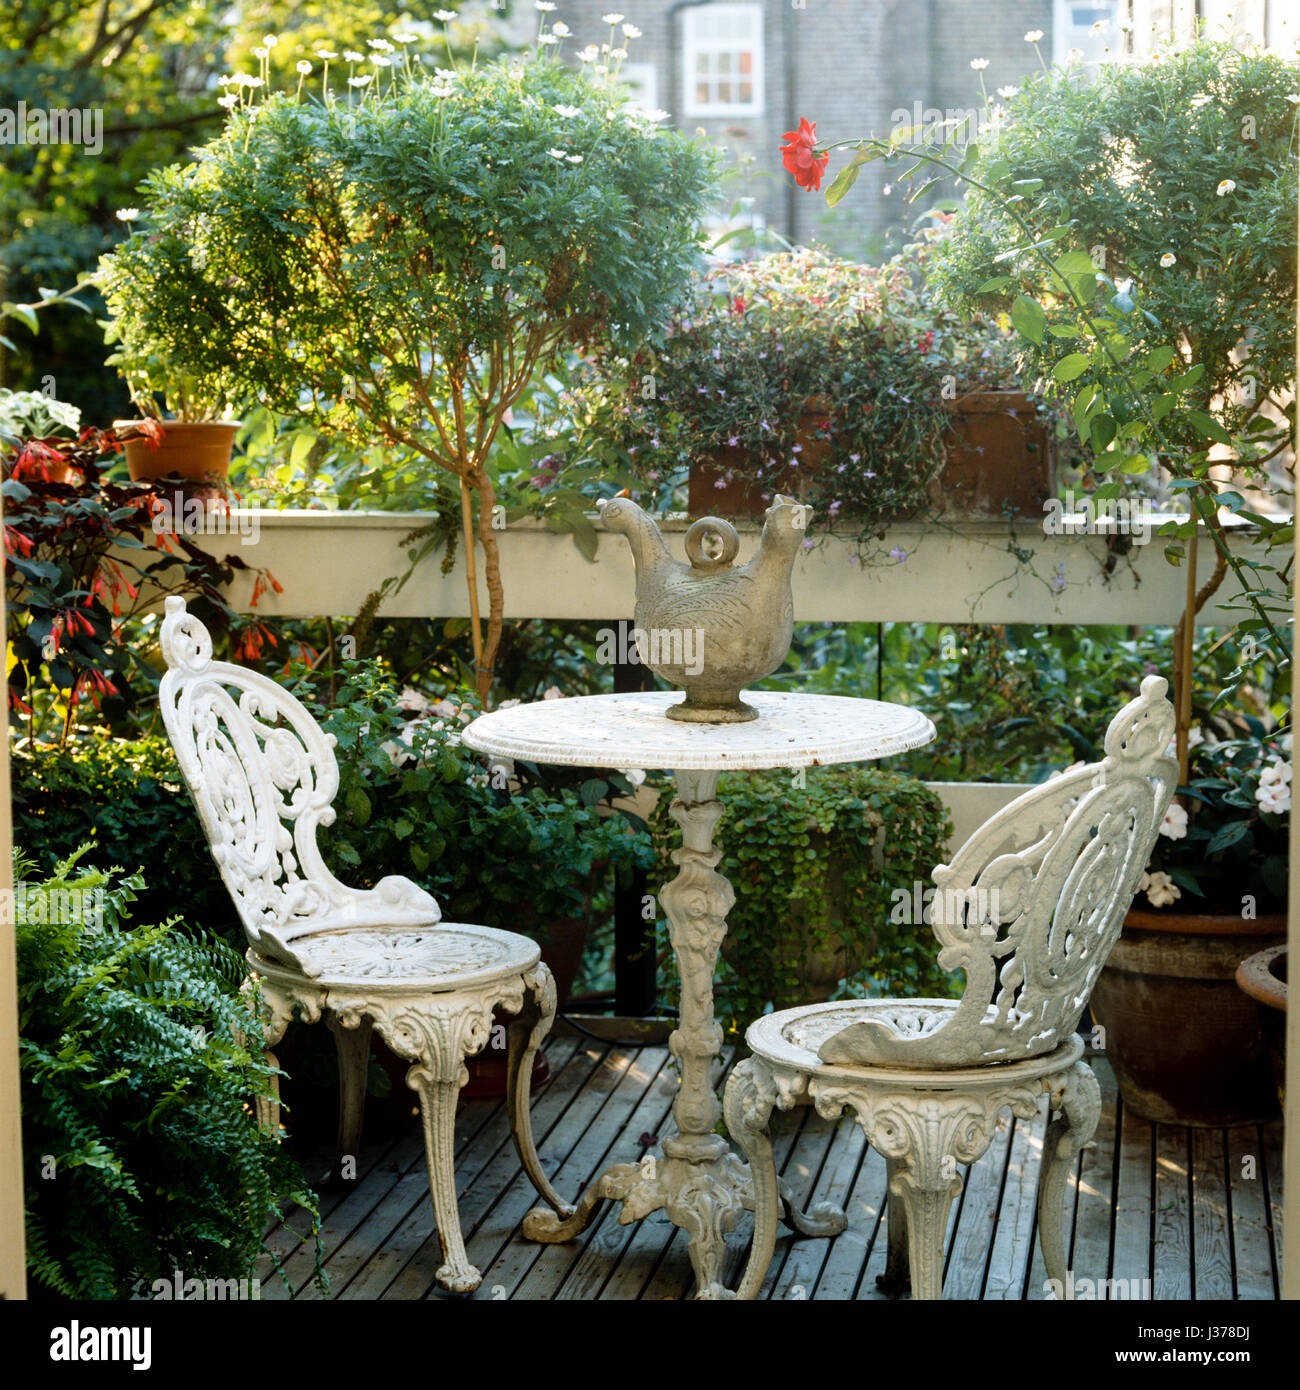 Table and chairs in back garden. - Stock Image